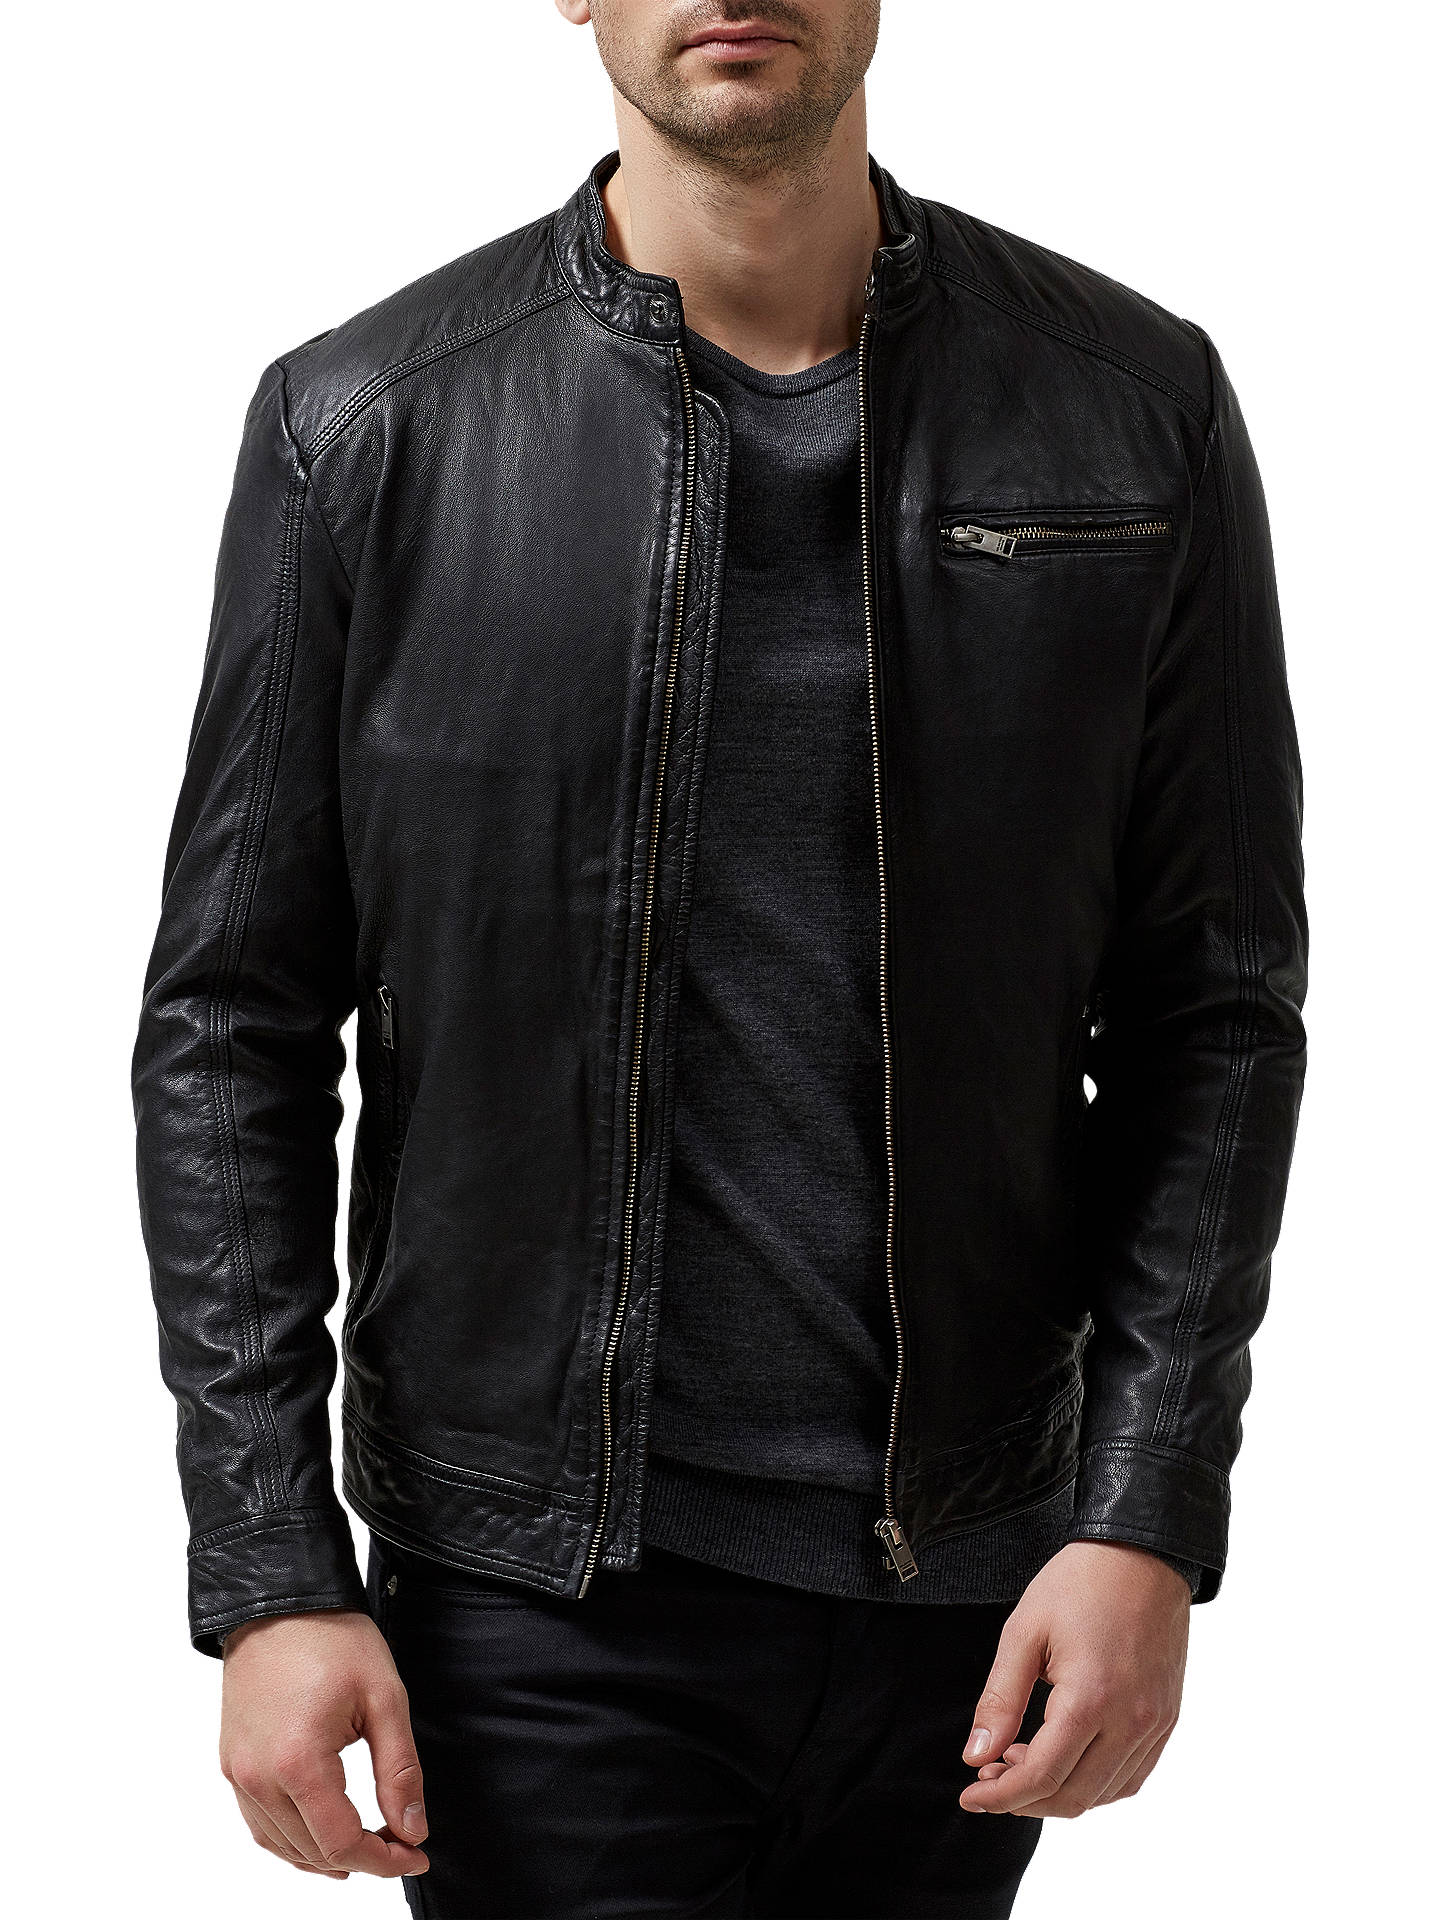 Selected Homme New Tylor Slim Fit Leather Jacket Black At John